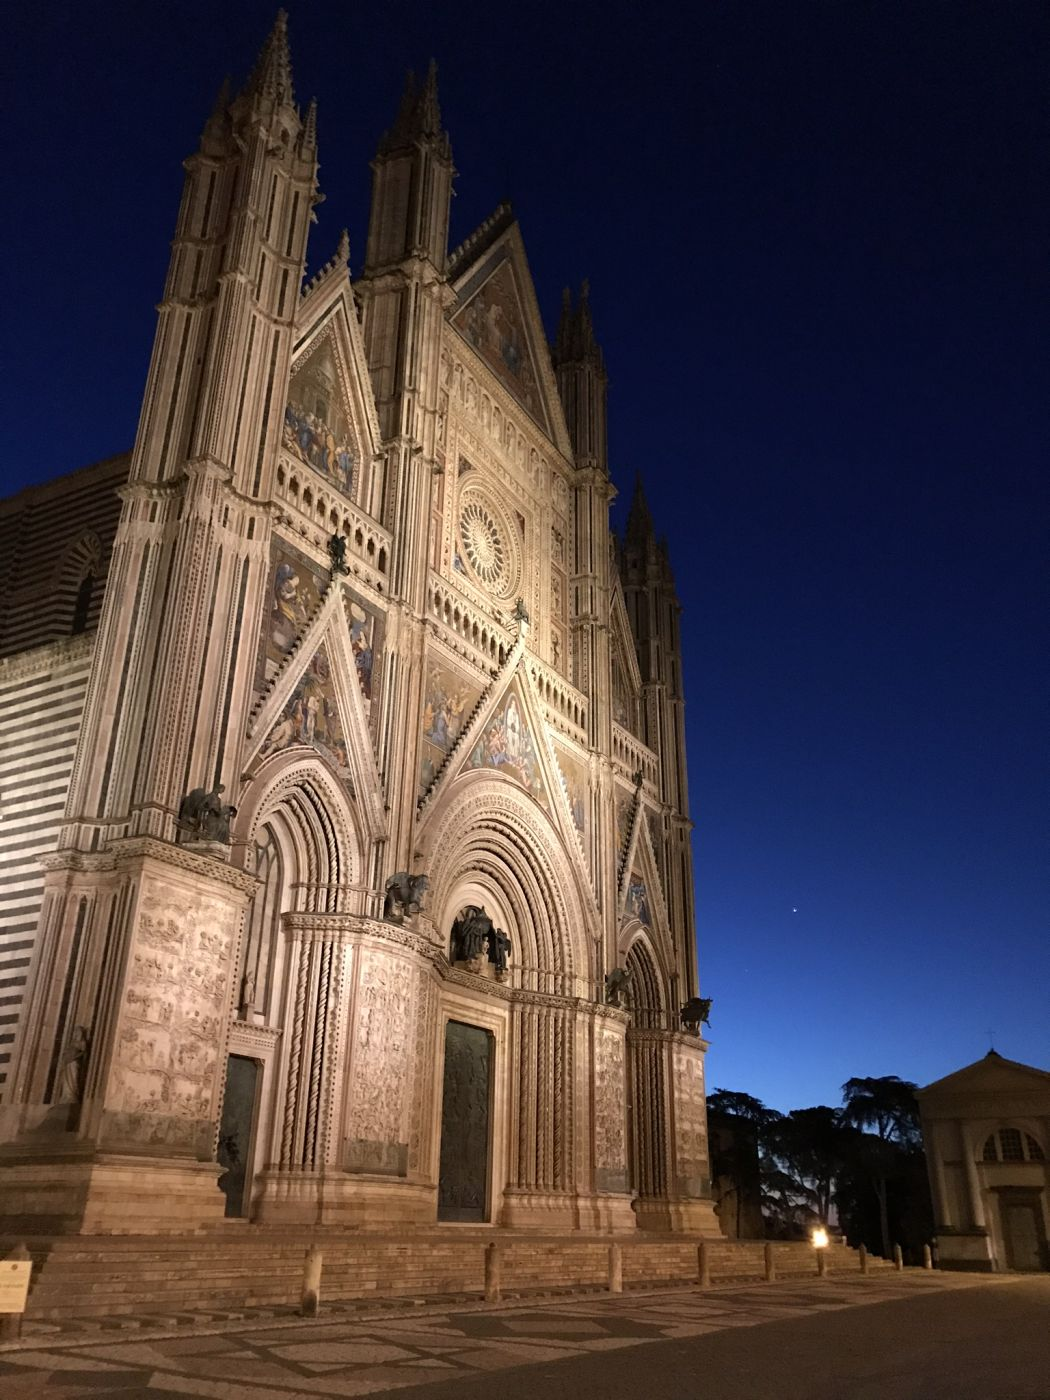 Orvieto Chathedral, Italy